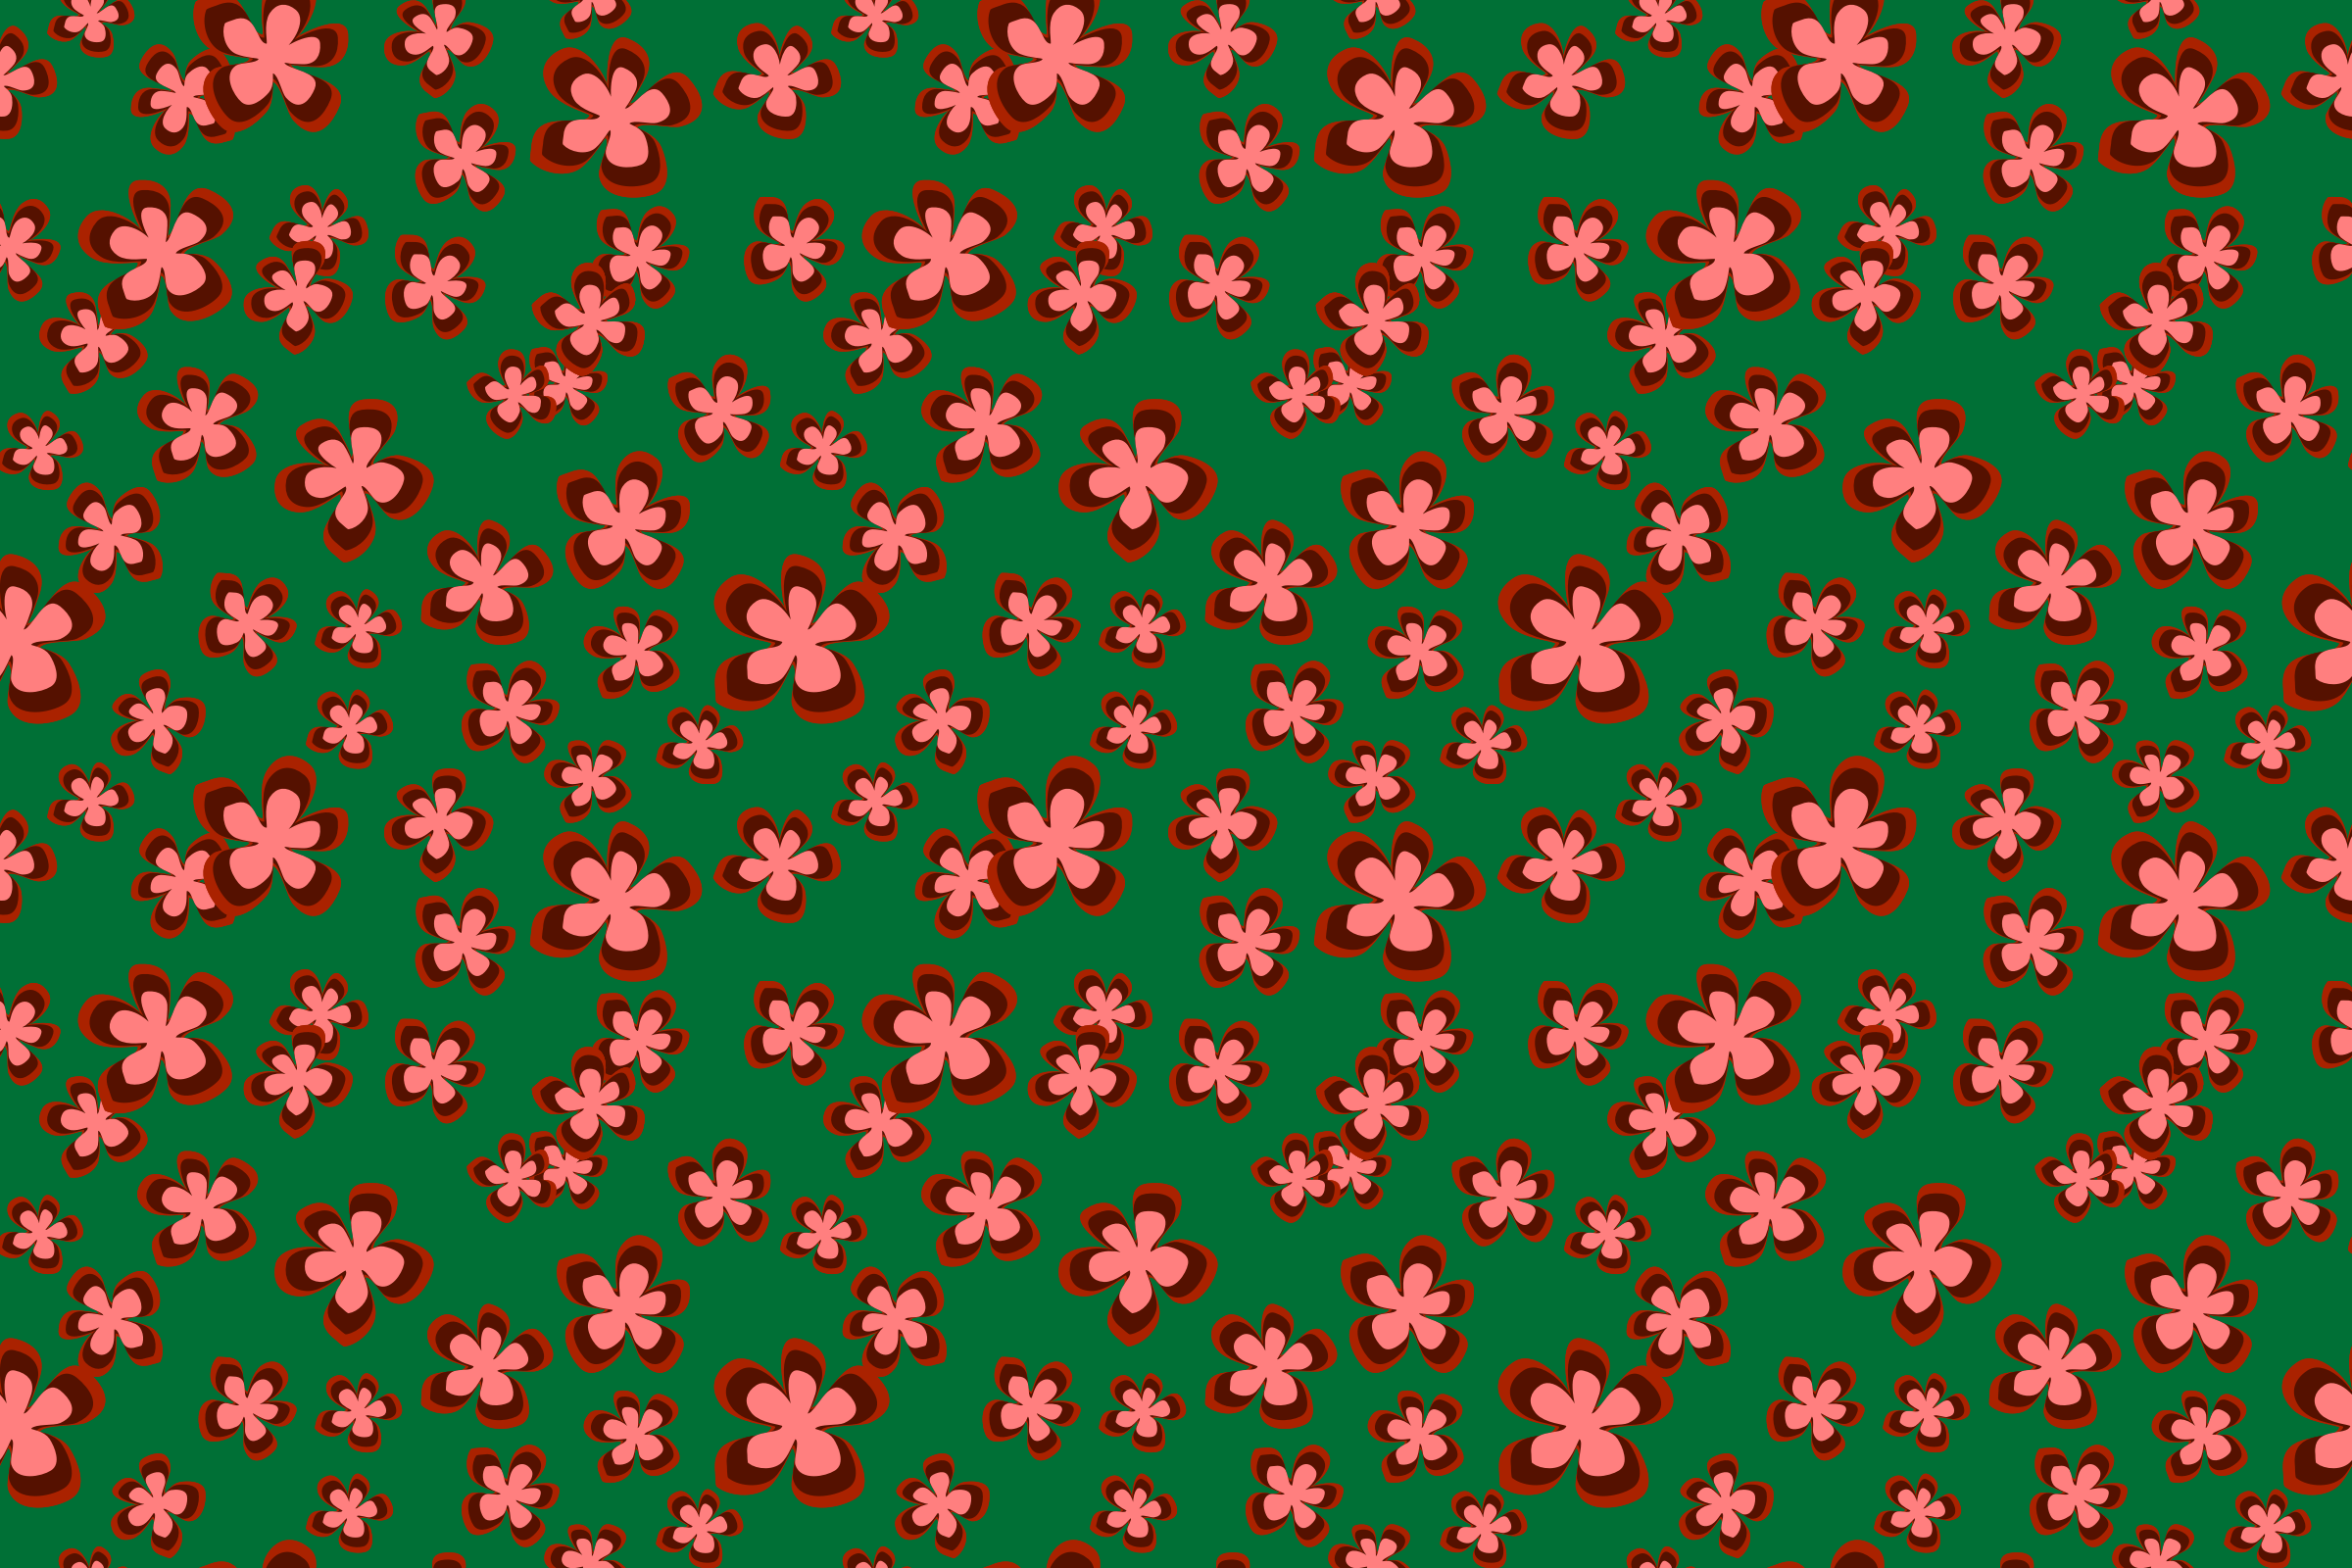 Floral pattern 7 (colour 4) by Firkin